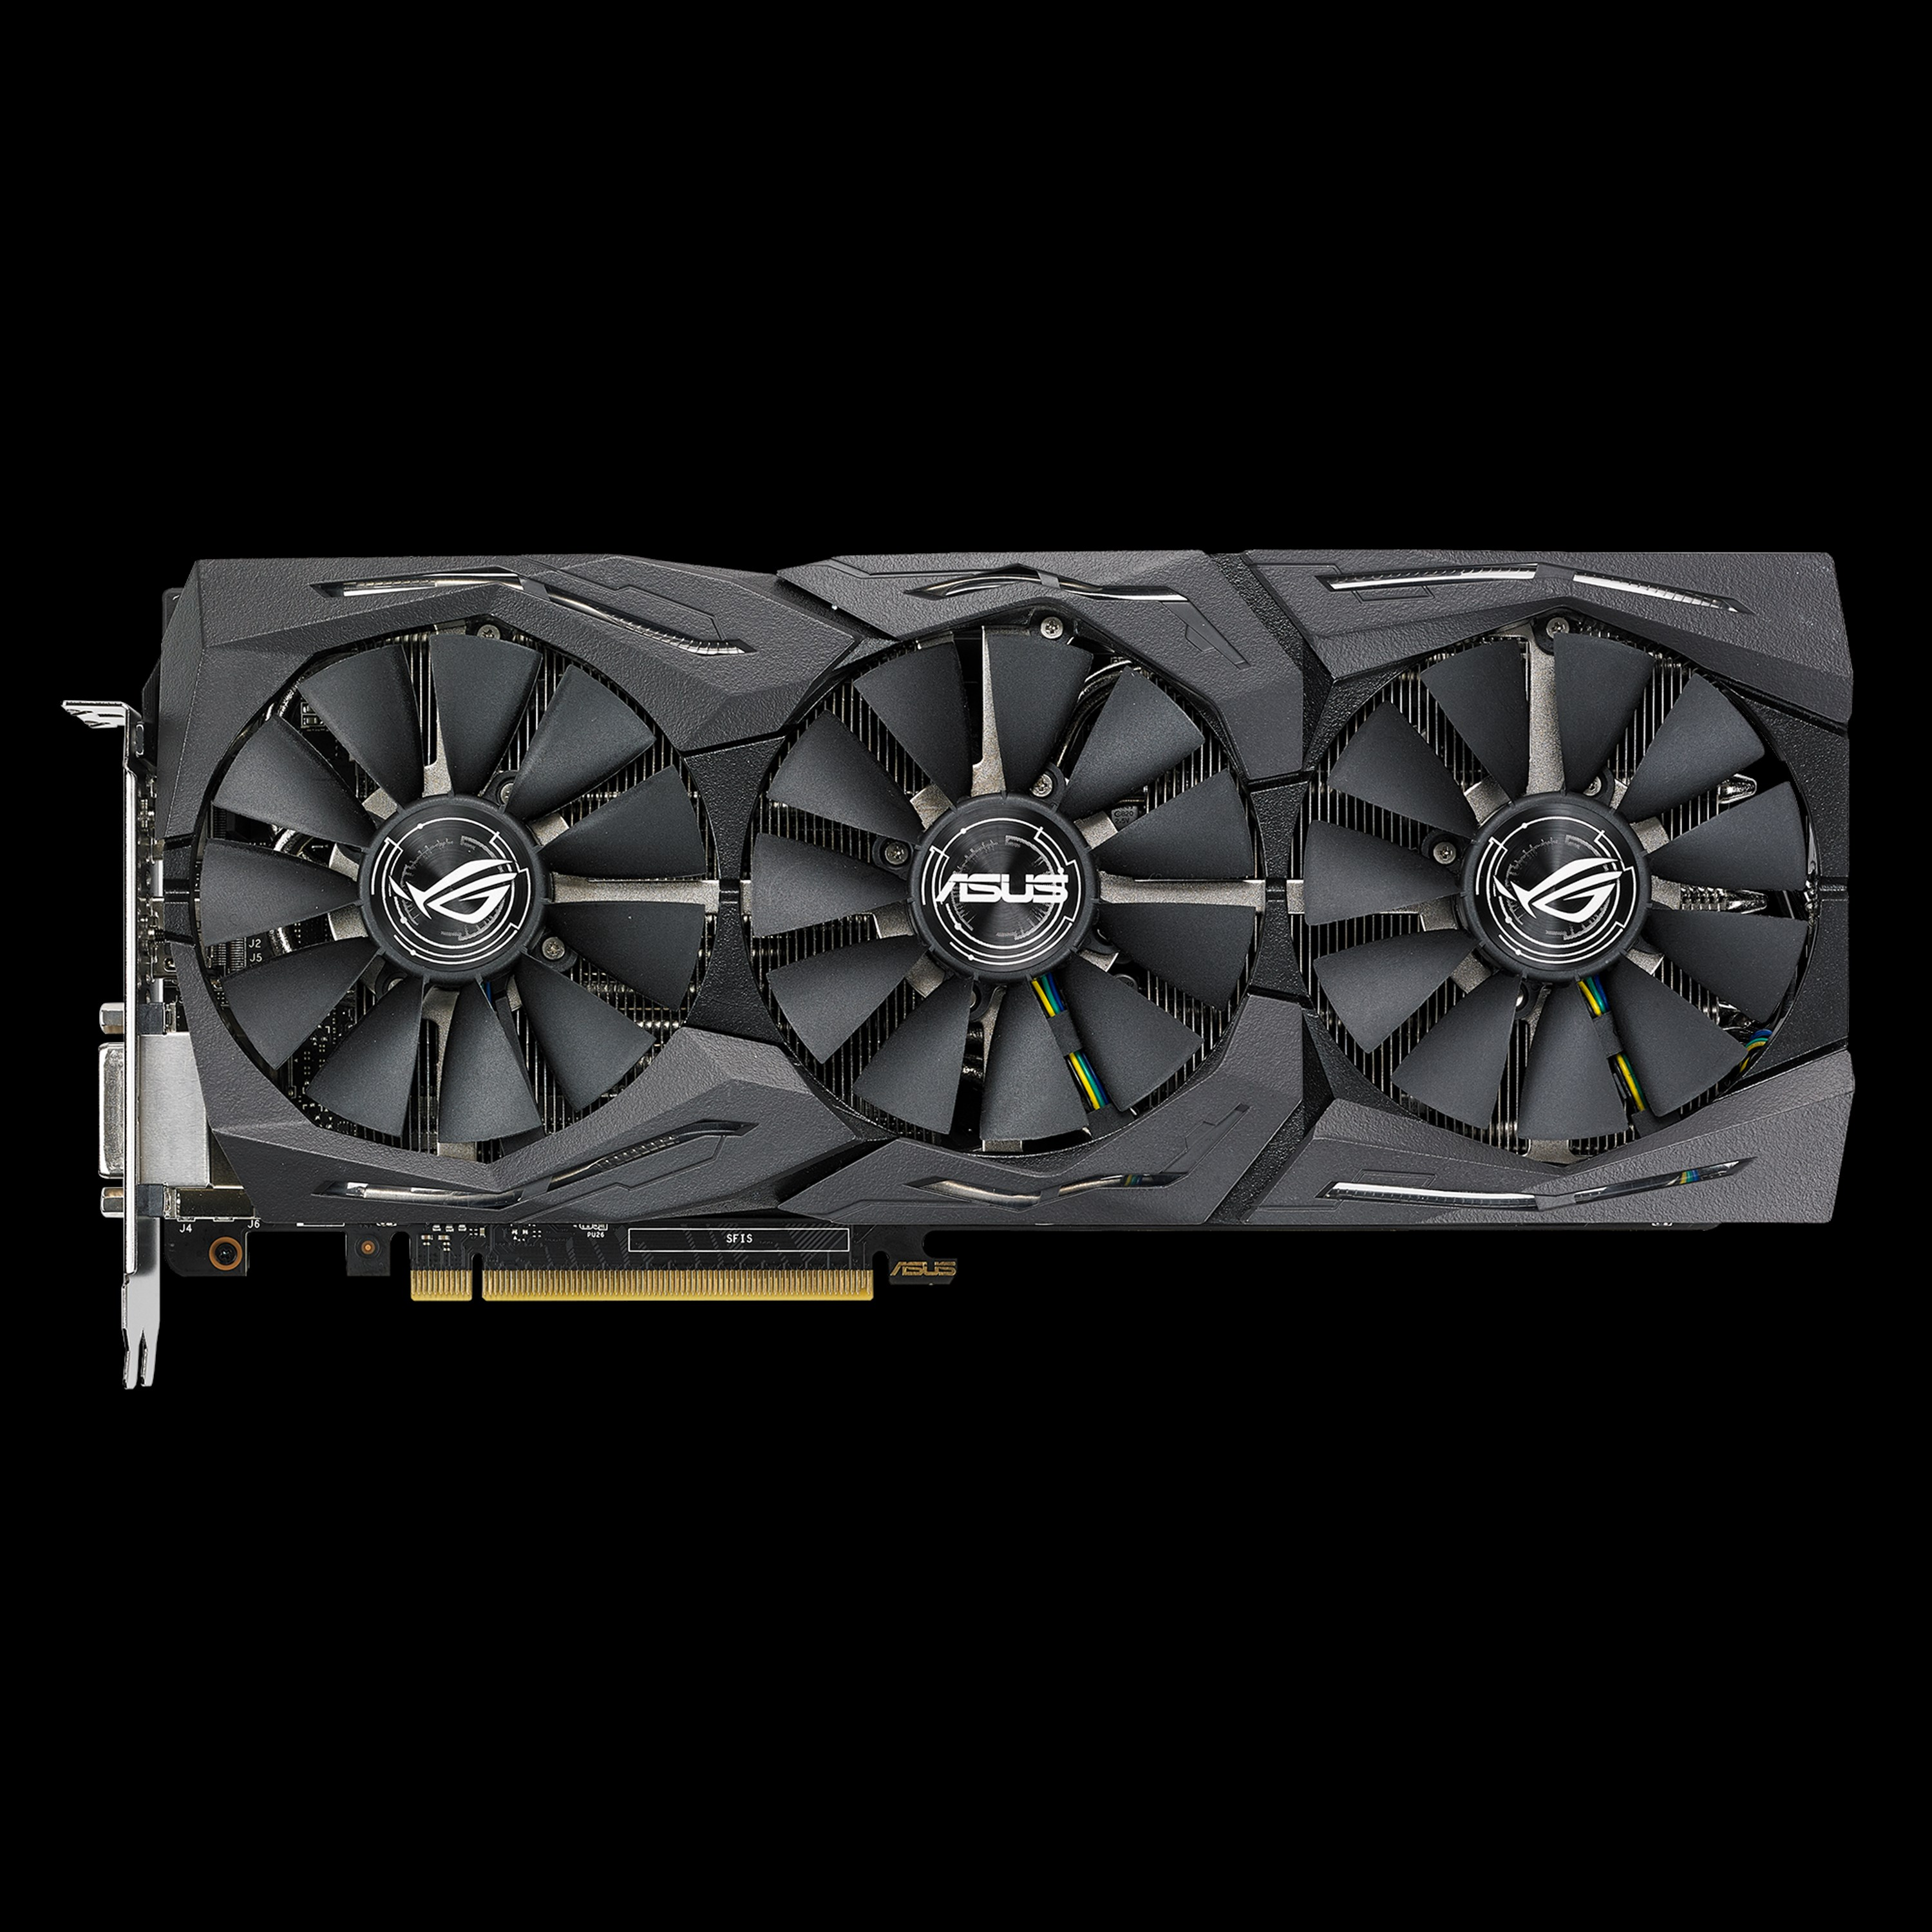 Asus Rog-Strix-Gtx1080Ti-11G-Gaming Graphics Card ROG-STRIX-GTX1080TI-11G-GAMING by ASUS